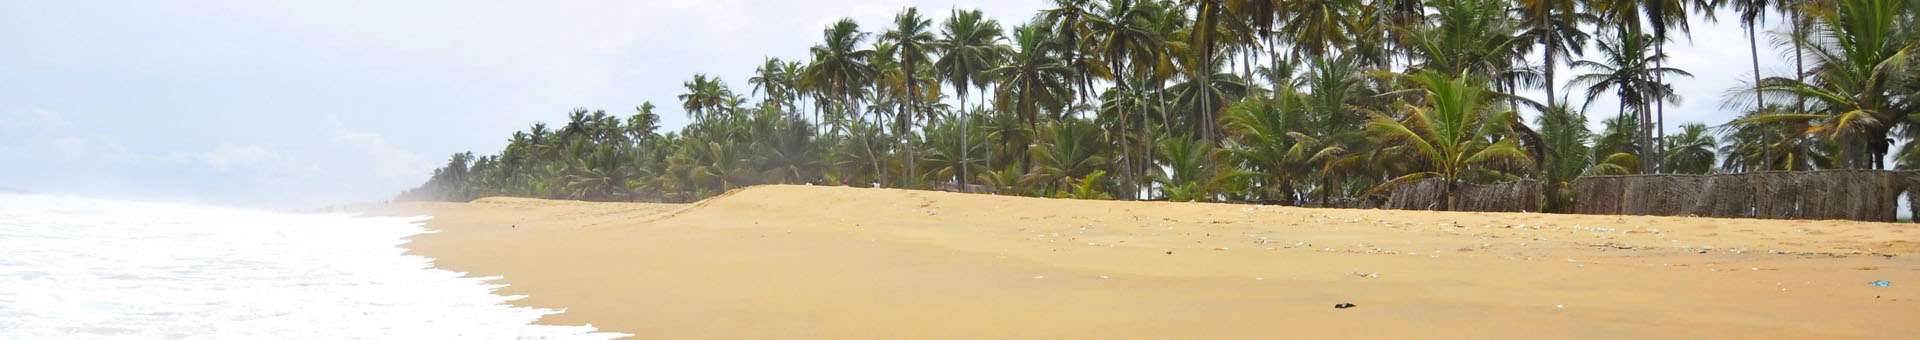 Search Whois information of domain names in Ivory Coast